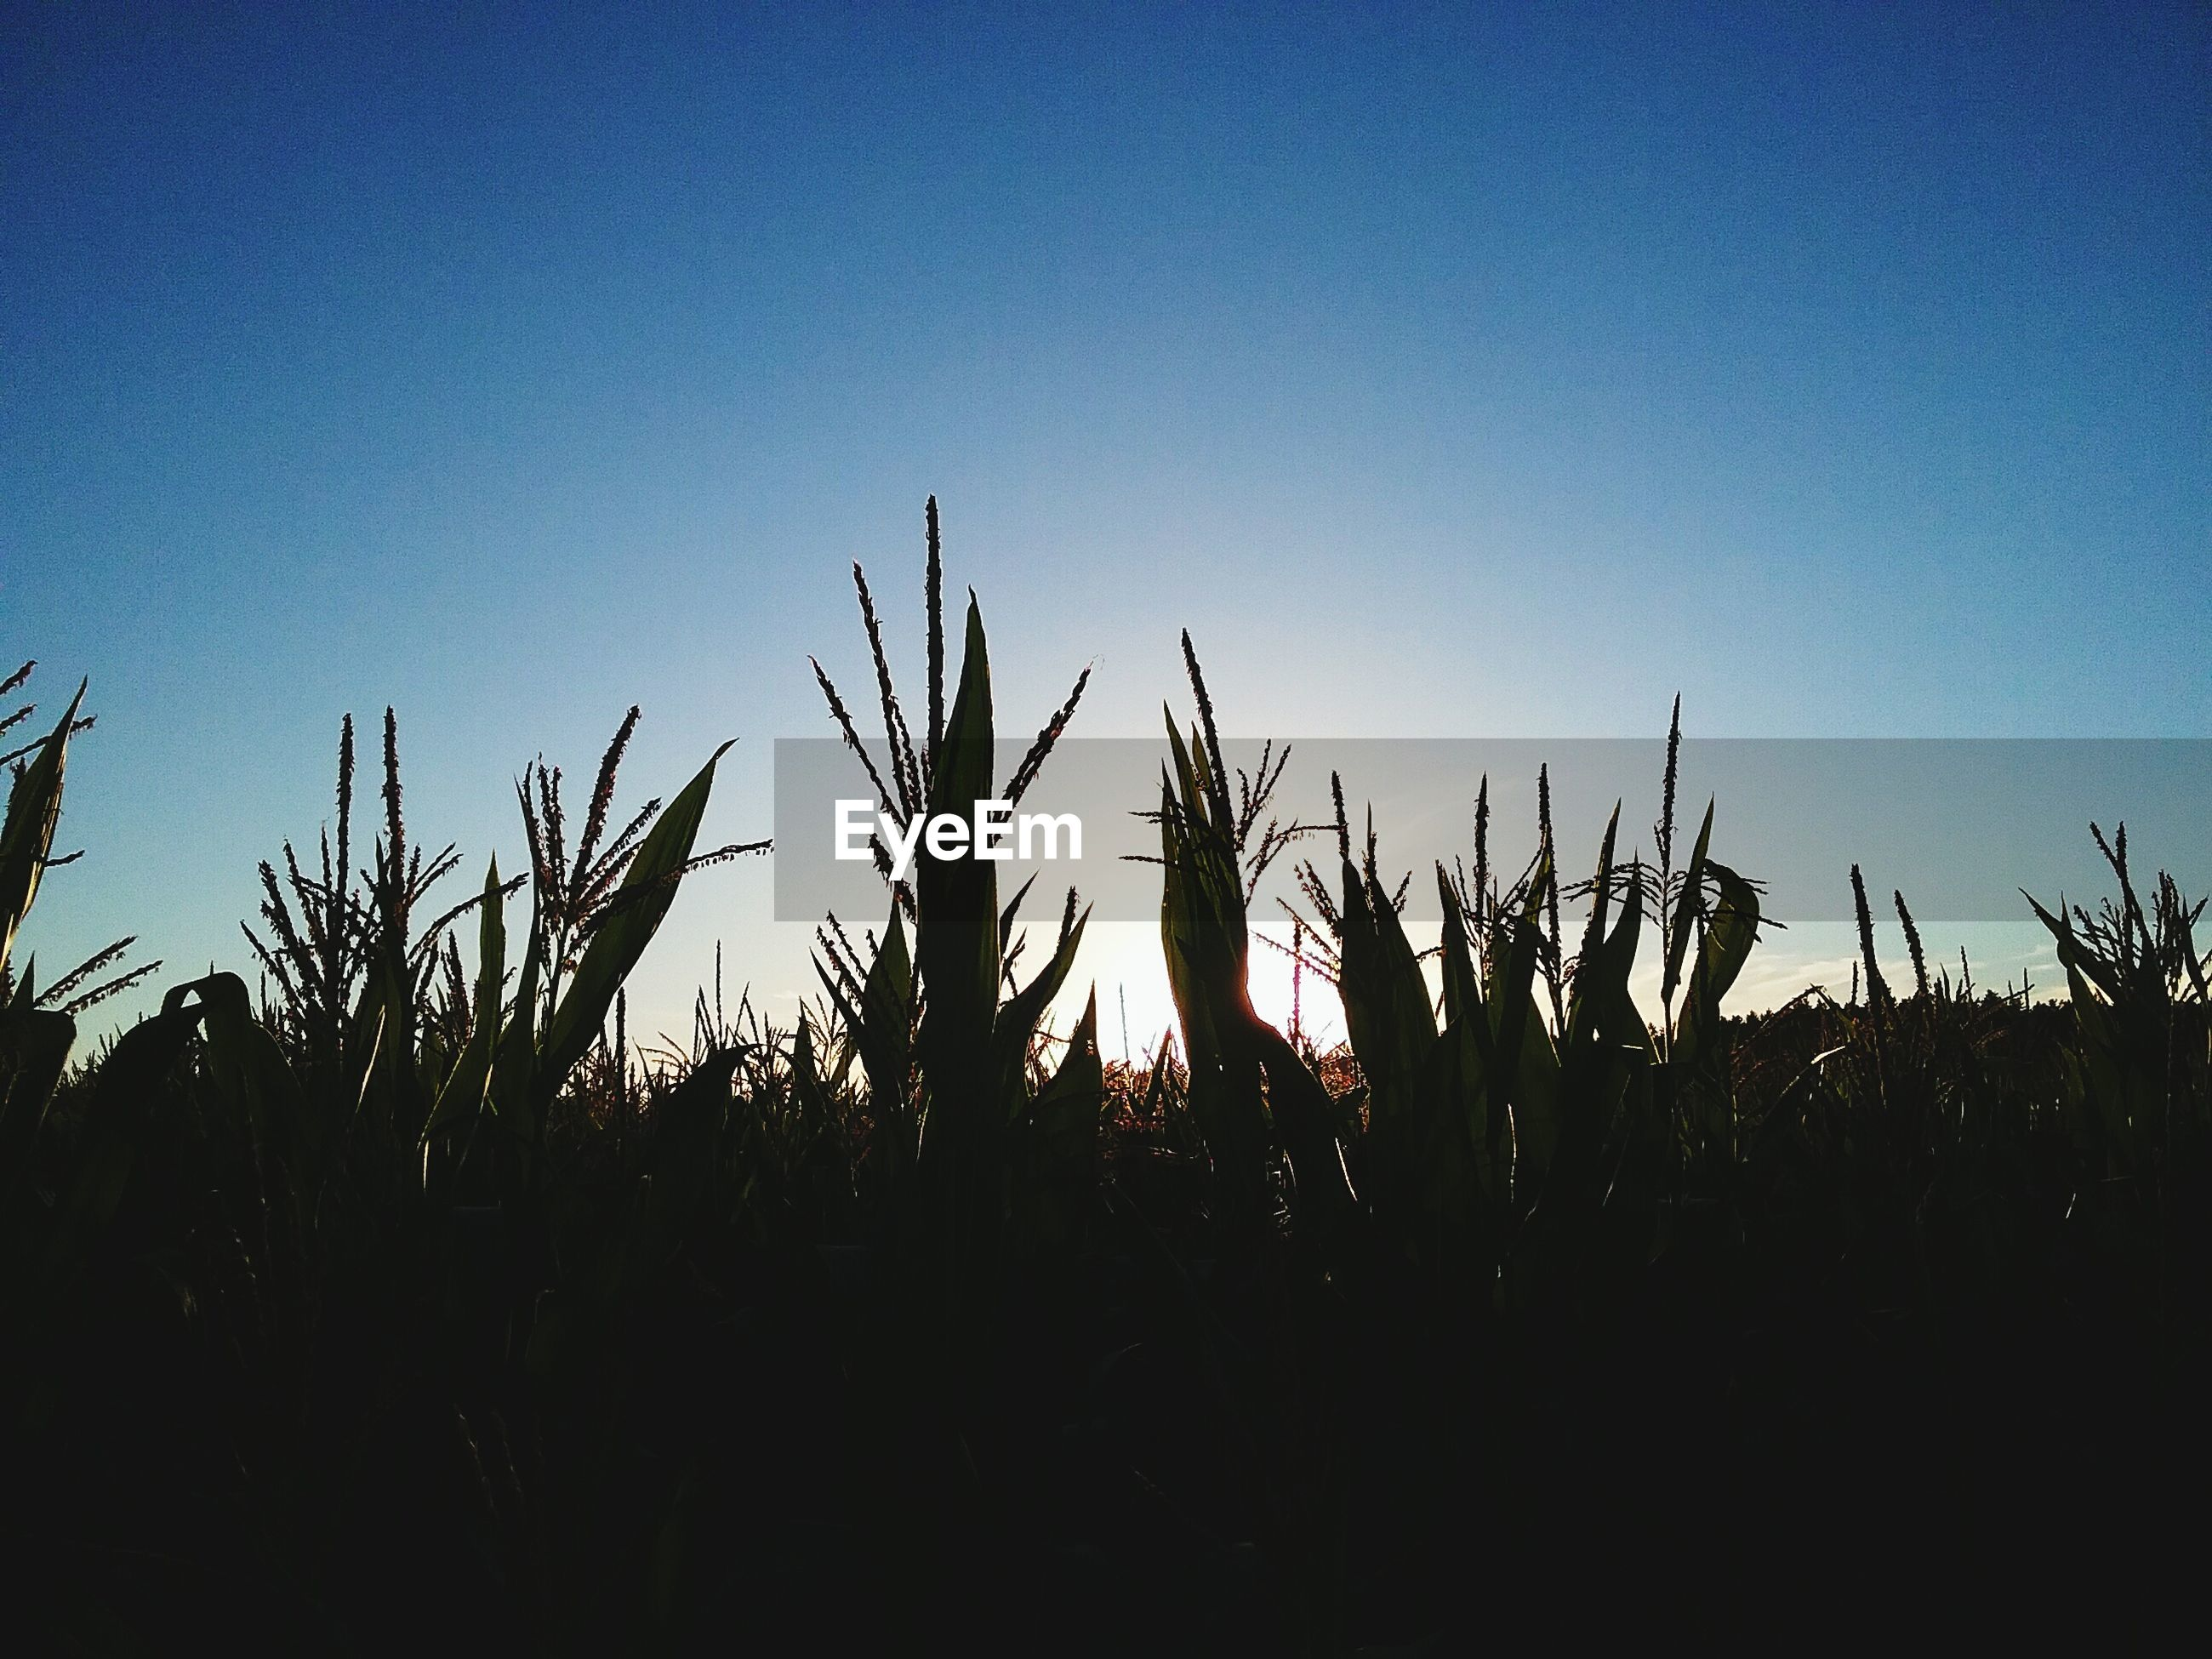 silhouette, growth, sunset, clear sky, blue, plant, tranquility, tranquil scene, beauty in nature, nature, scenics, back lit, sun, field, uncultivated, outdoors, majestic, outline, tall - high, surface level, non-urban scene, stalk, tall grass, no people